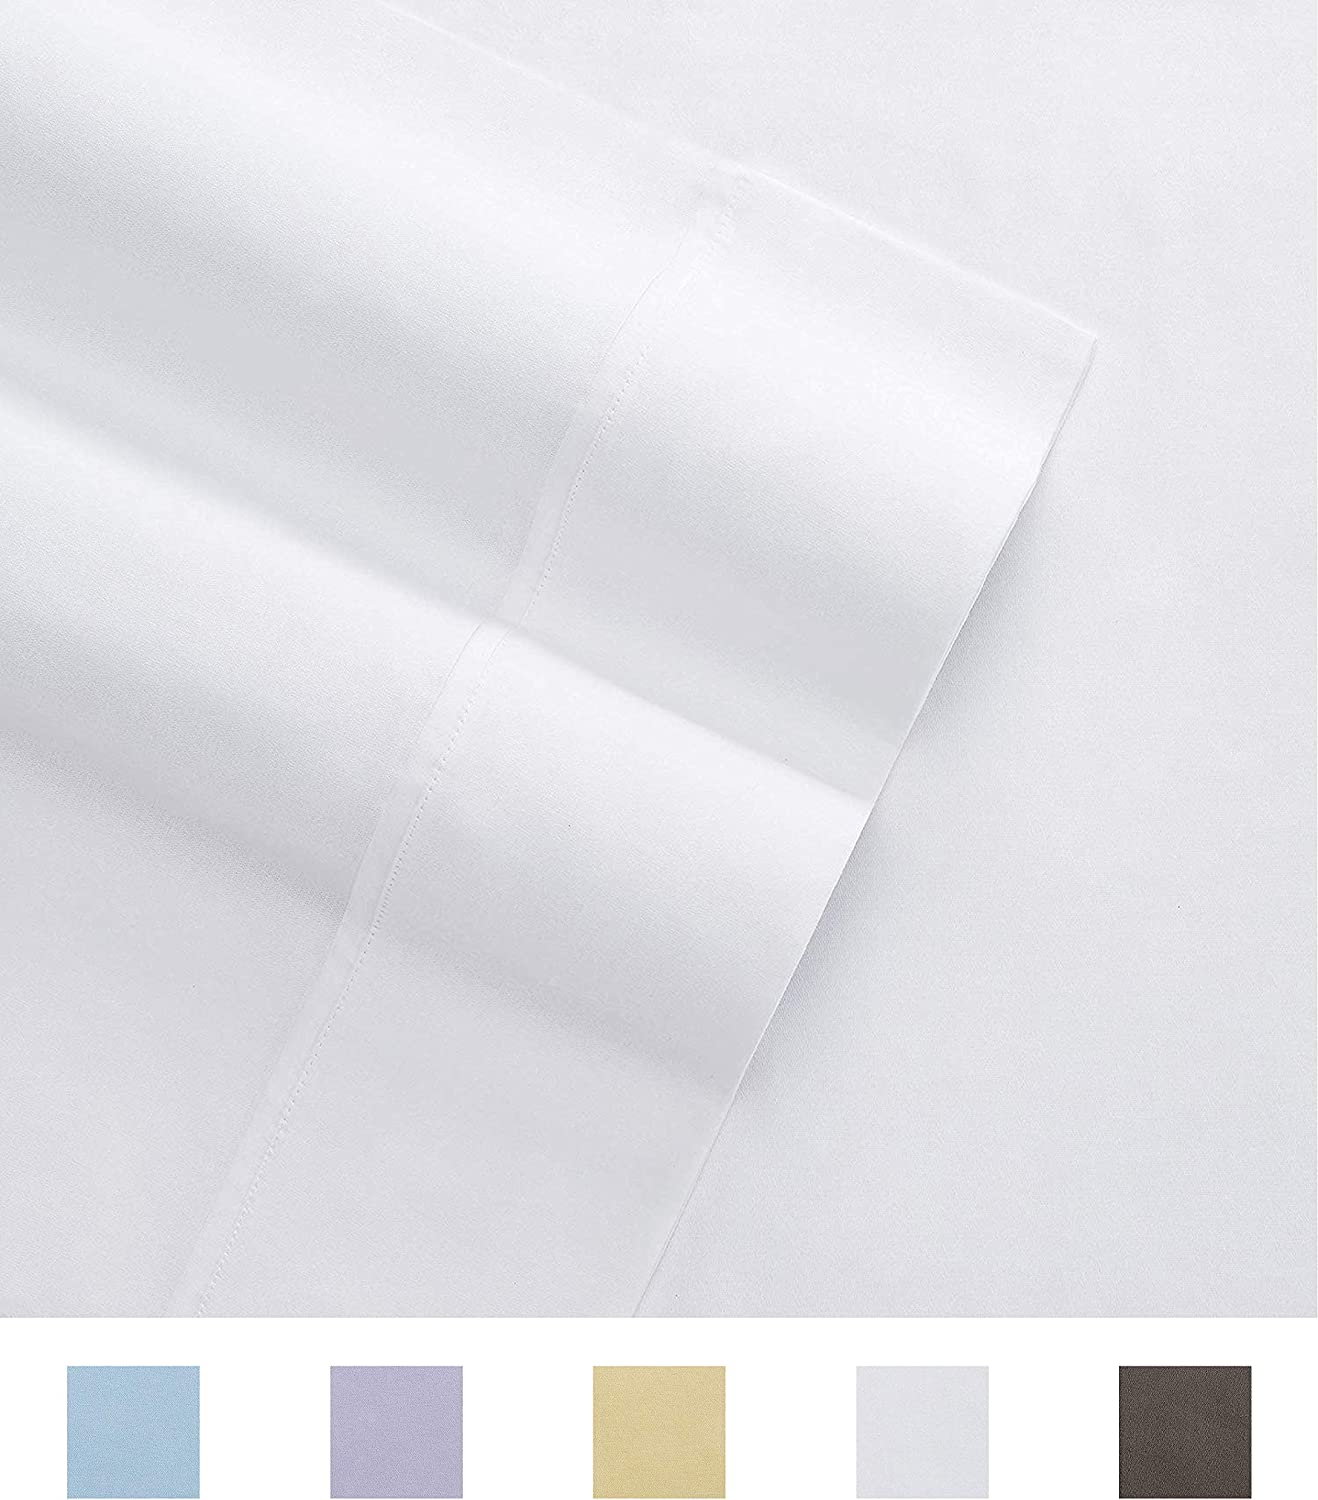 Columbia Organic Cotton Sateen Weave Performance Sheet Set – 300TC with Omni-Wick Moisture Wicking Stay Dry Technology - 100% GOTS Certified Organic Cotton – Full 4-Piece Sheet Set, Bright White